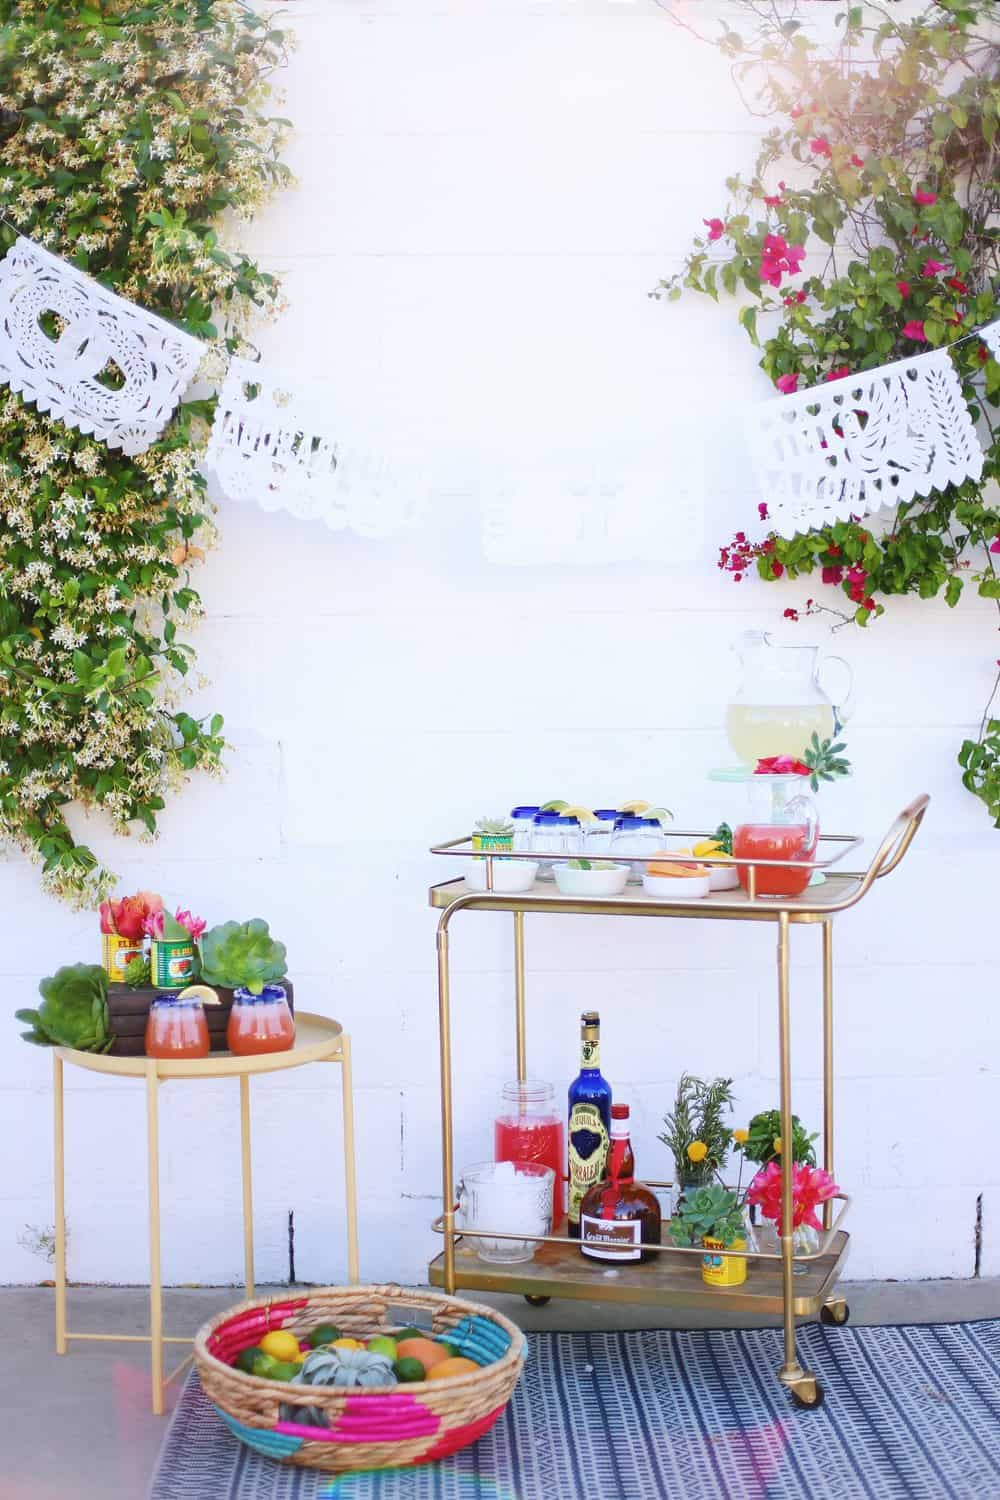 DIY Margarita Bar outside in front of a white backdrop